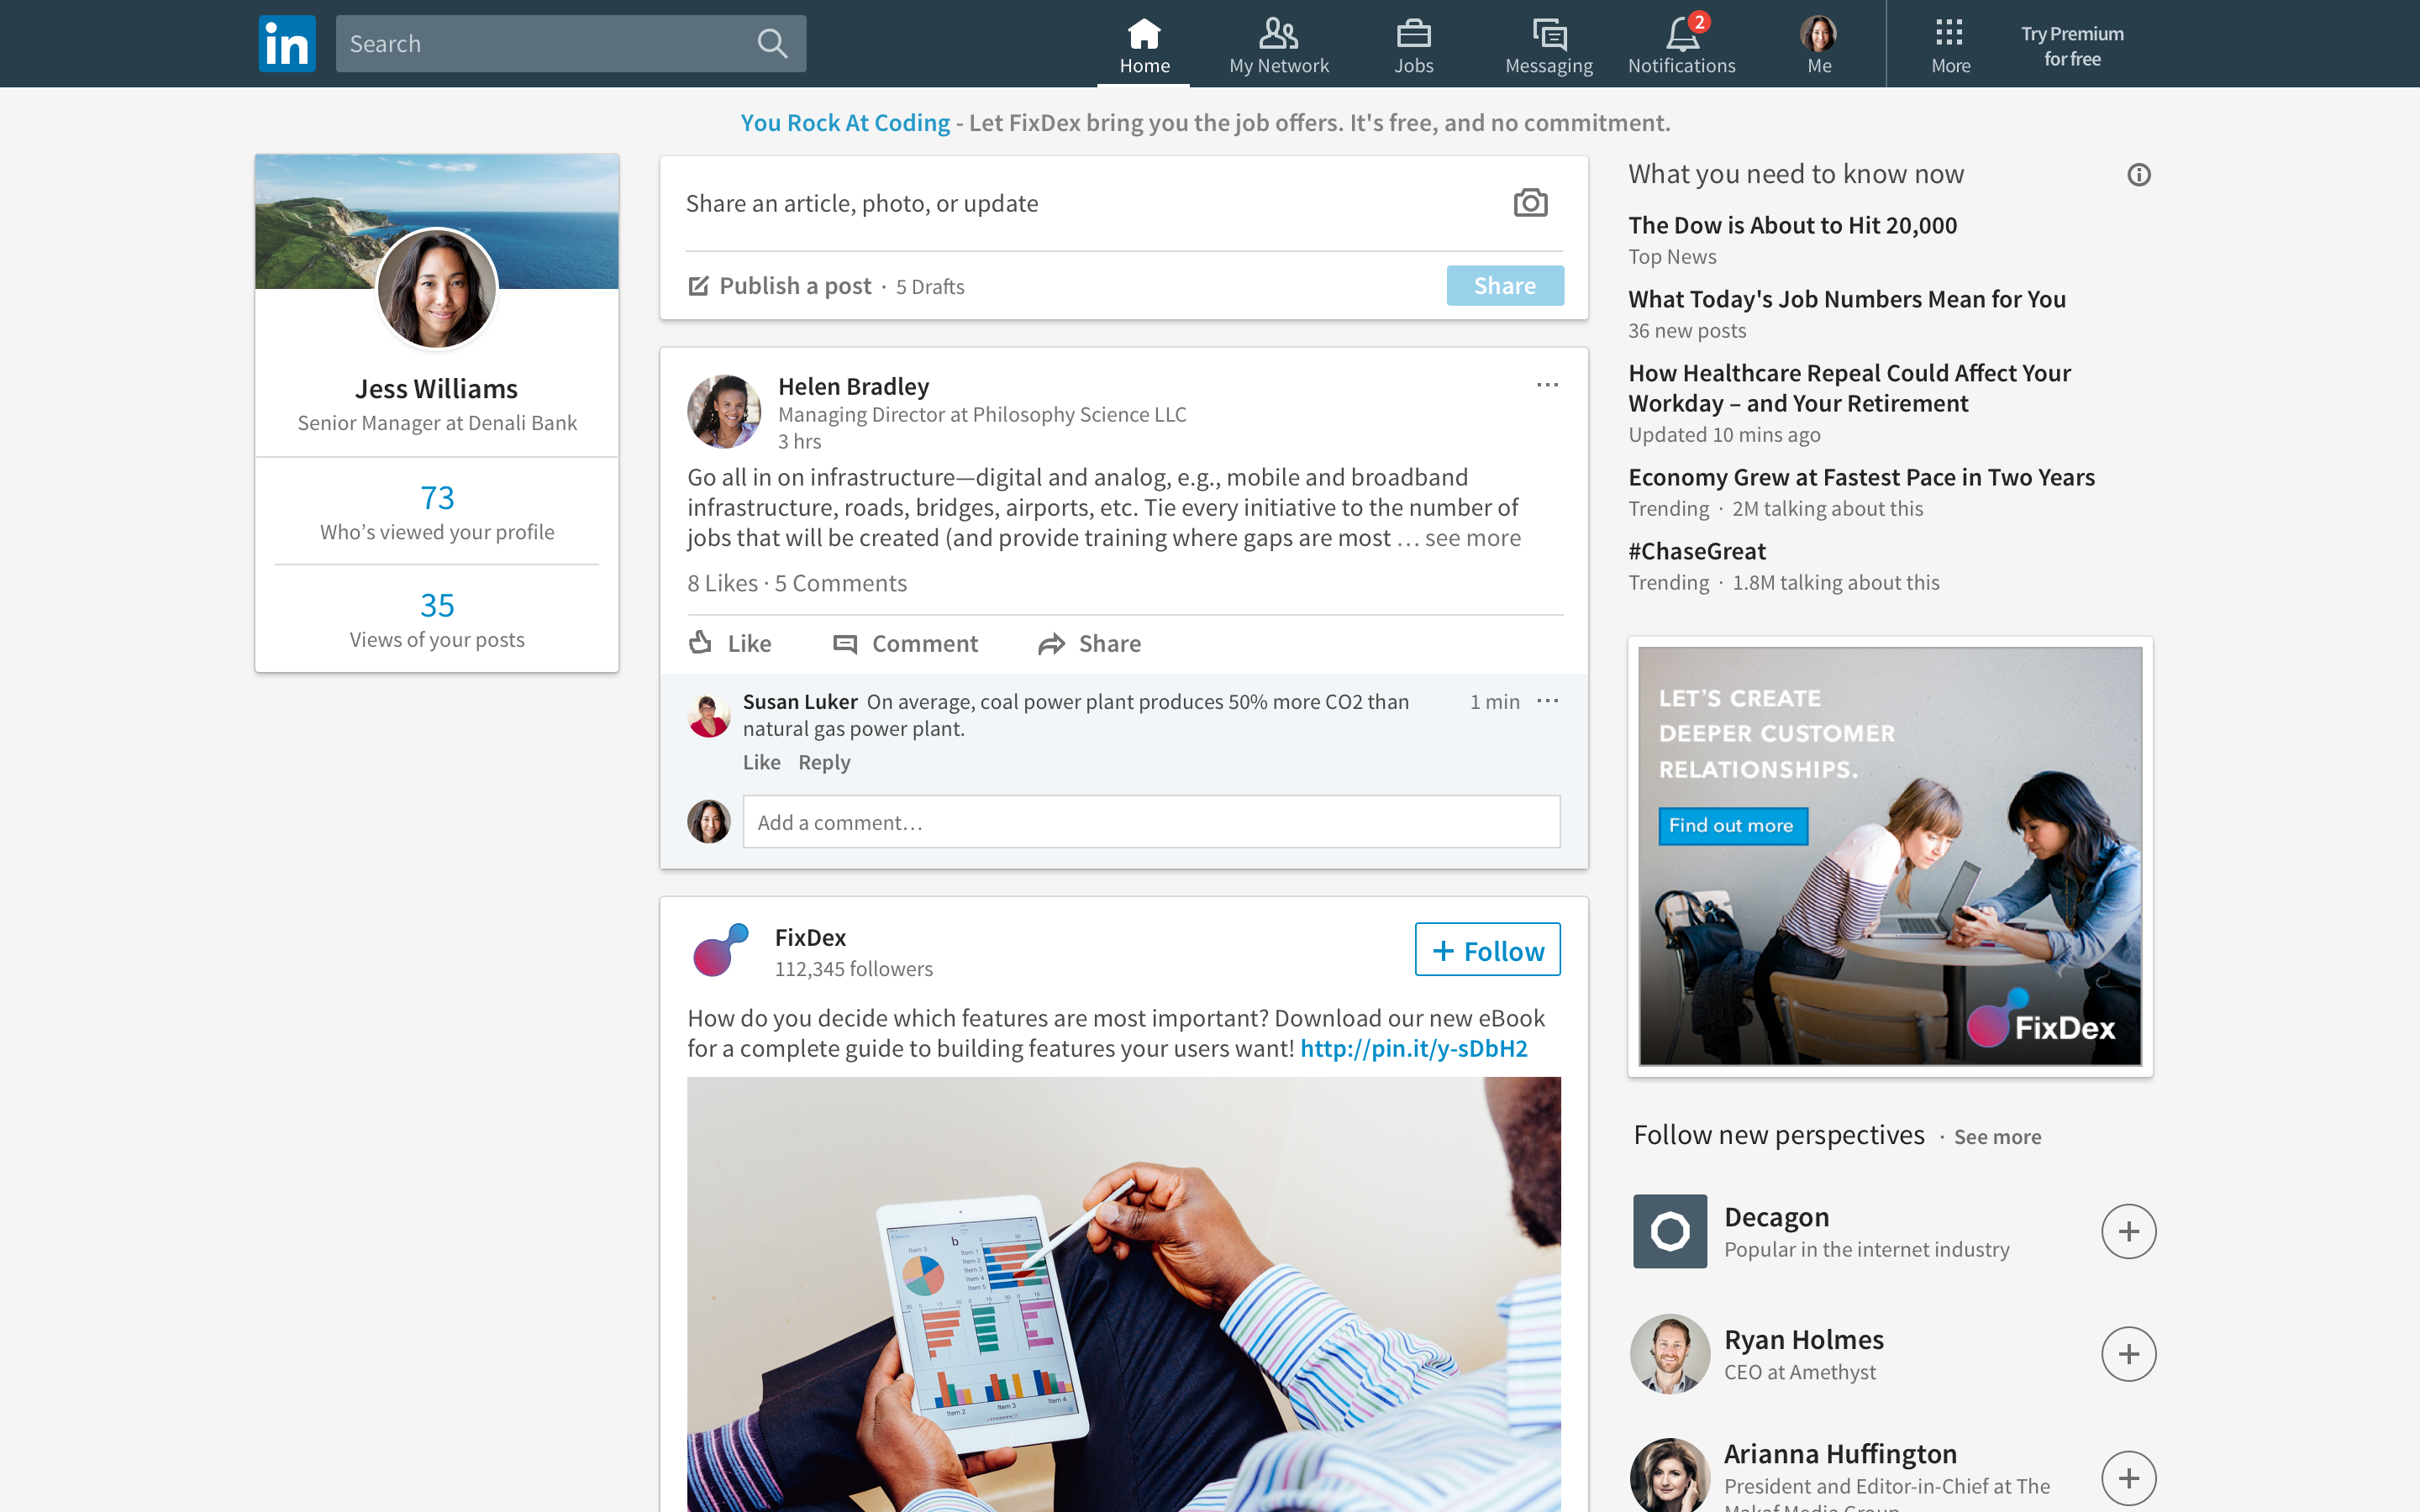 Linkedin mercifully redesigns its cluttered homepage stopboris Images